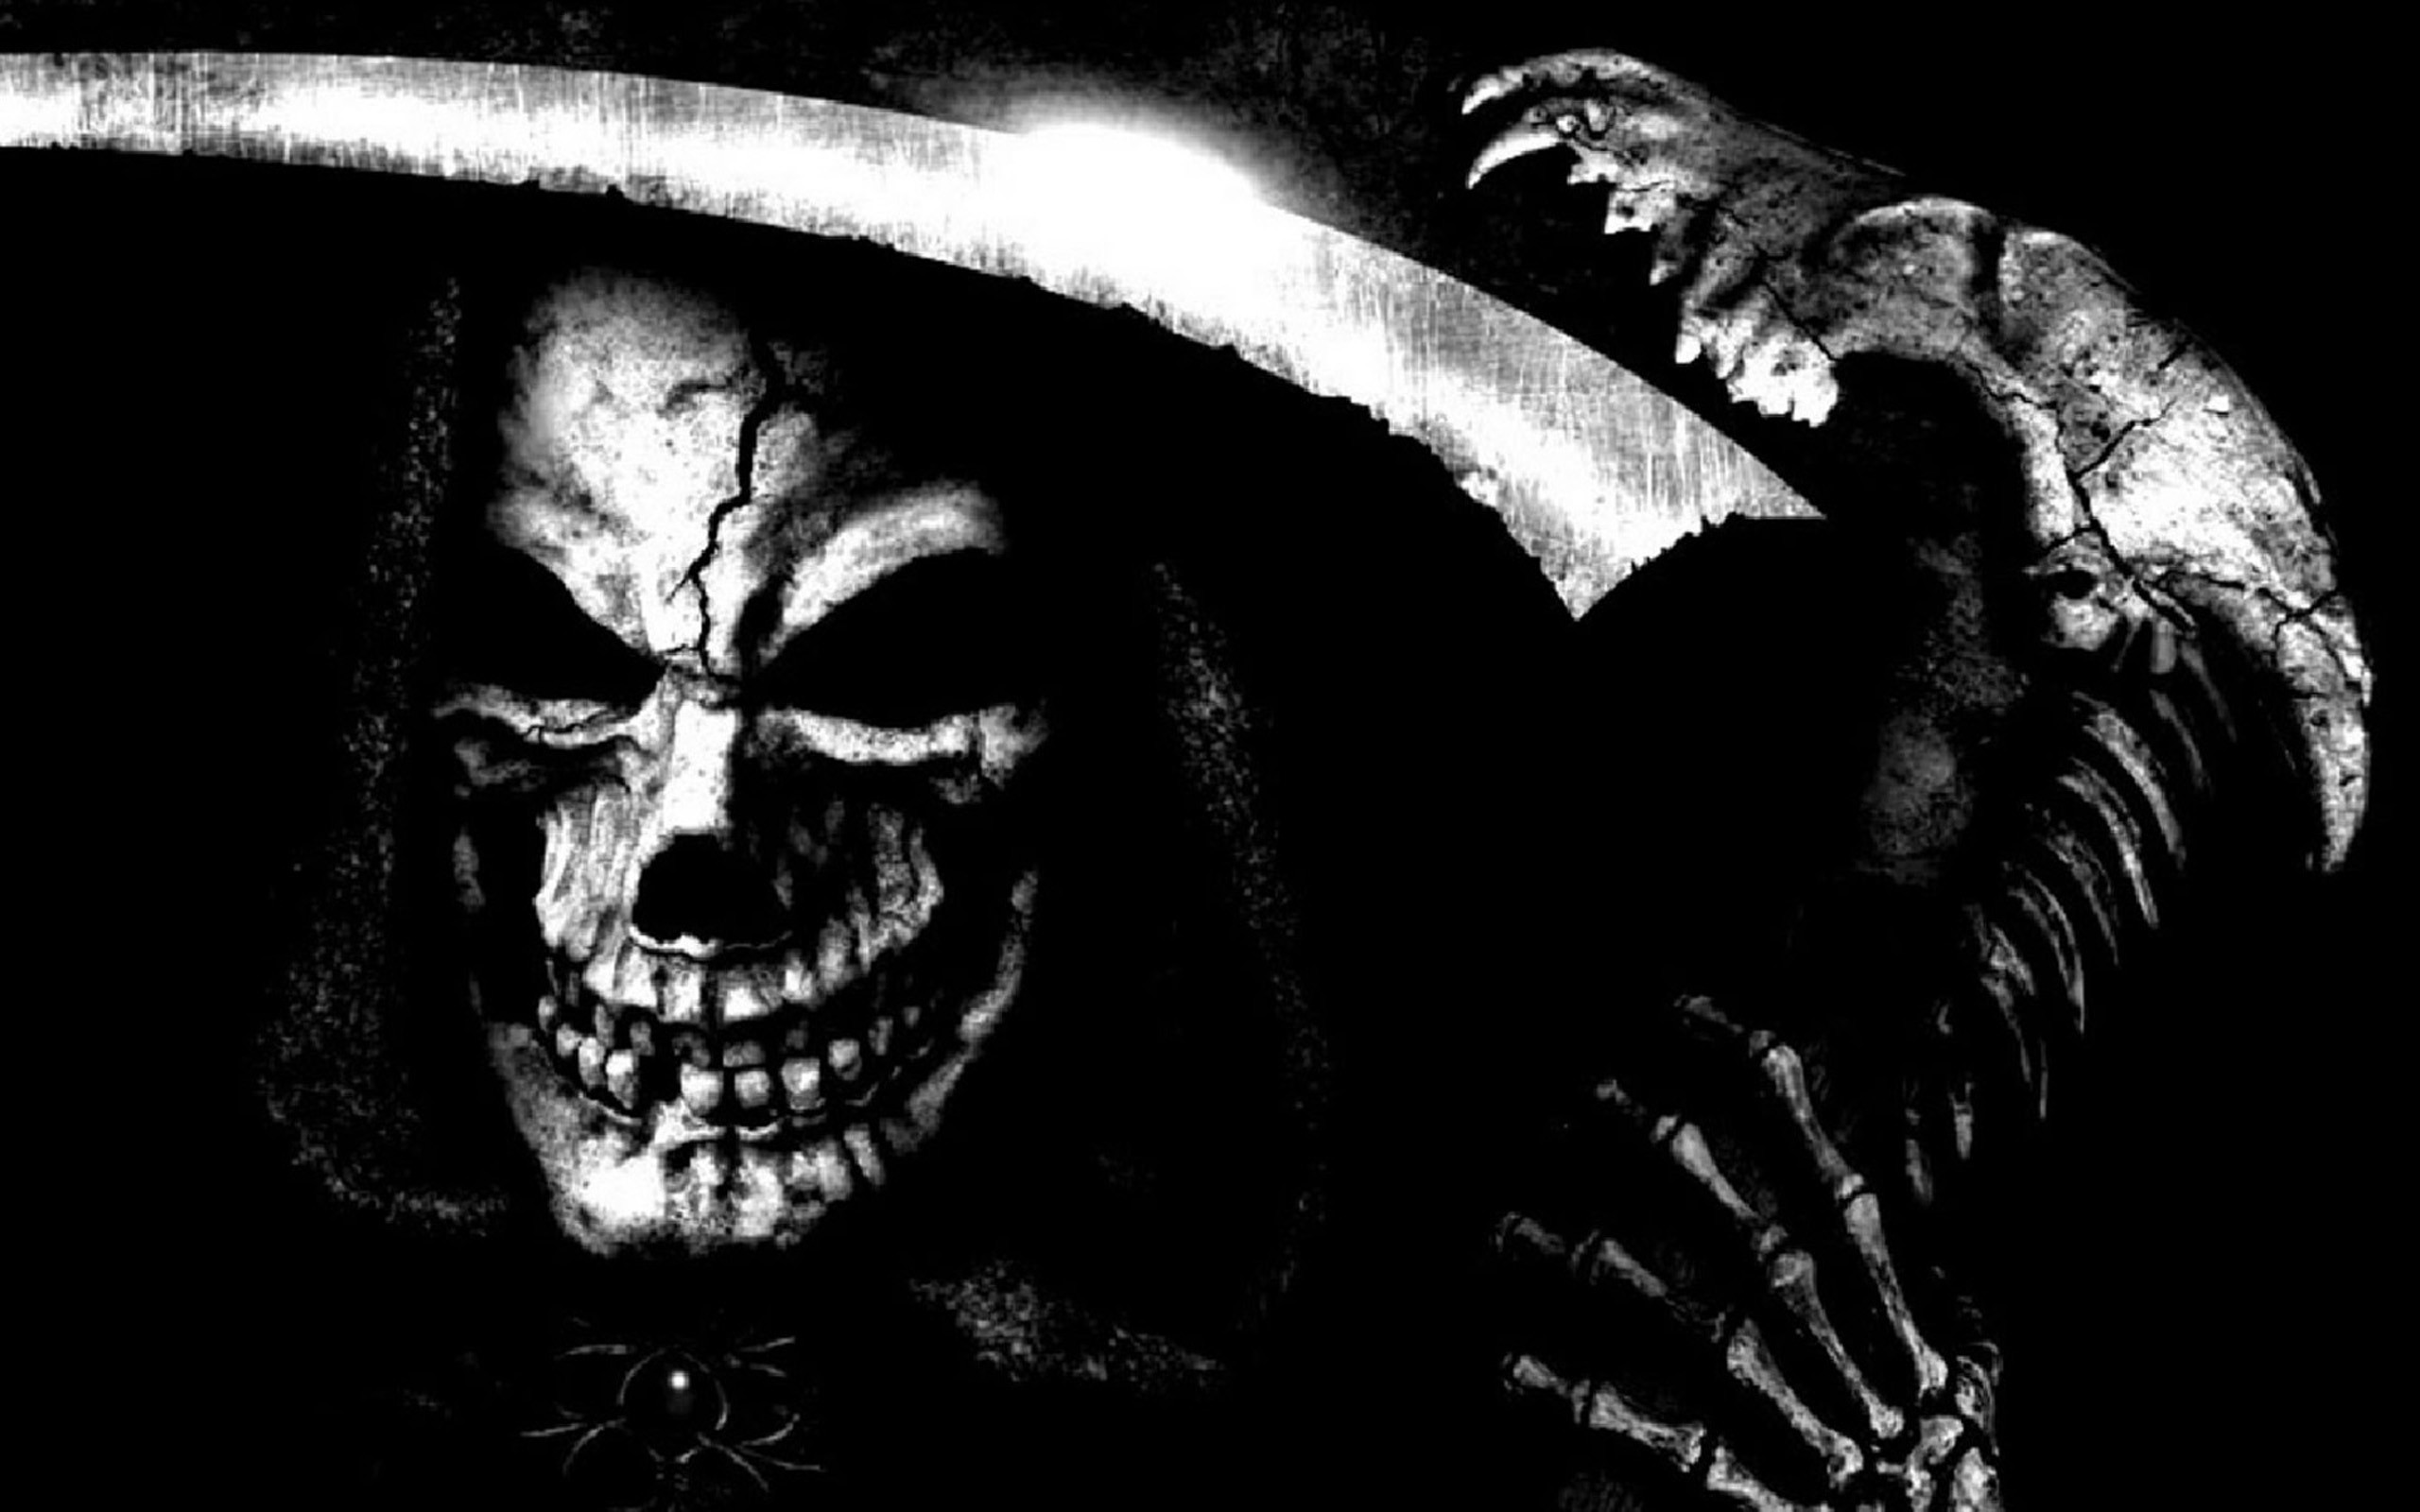 Scary Skull Wallpapers HD Download Scary Skull Wallpapers HD .